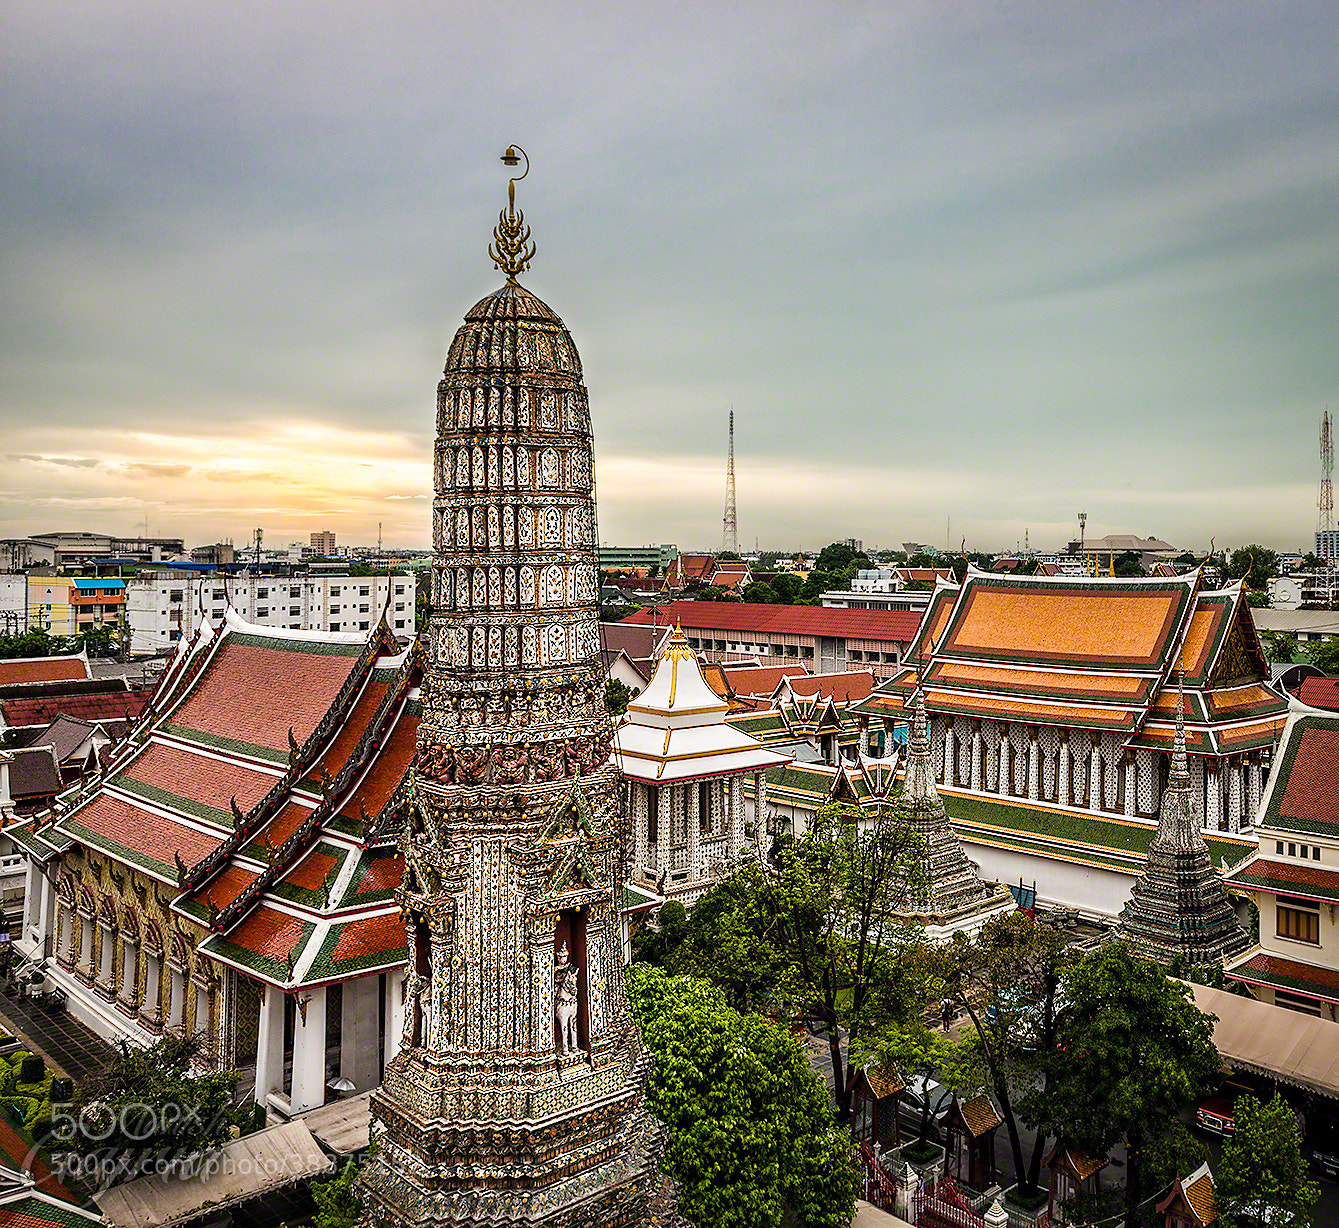 Photograph Sunset over Wat Arun by Manish Gajria on 500px